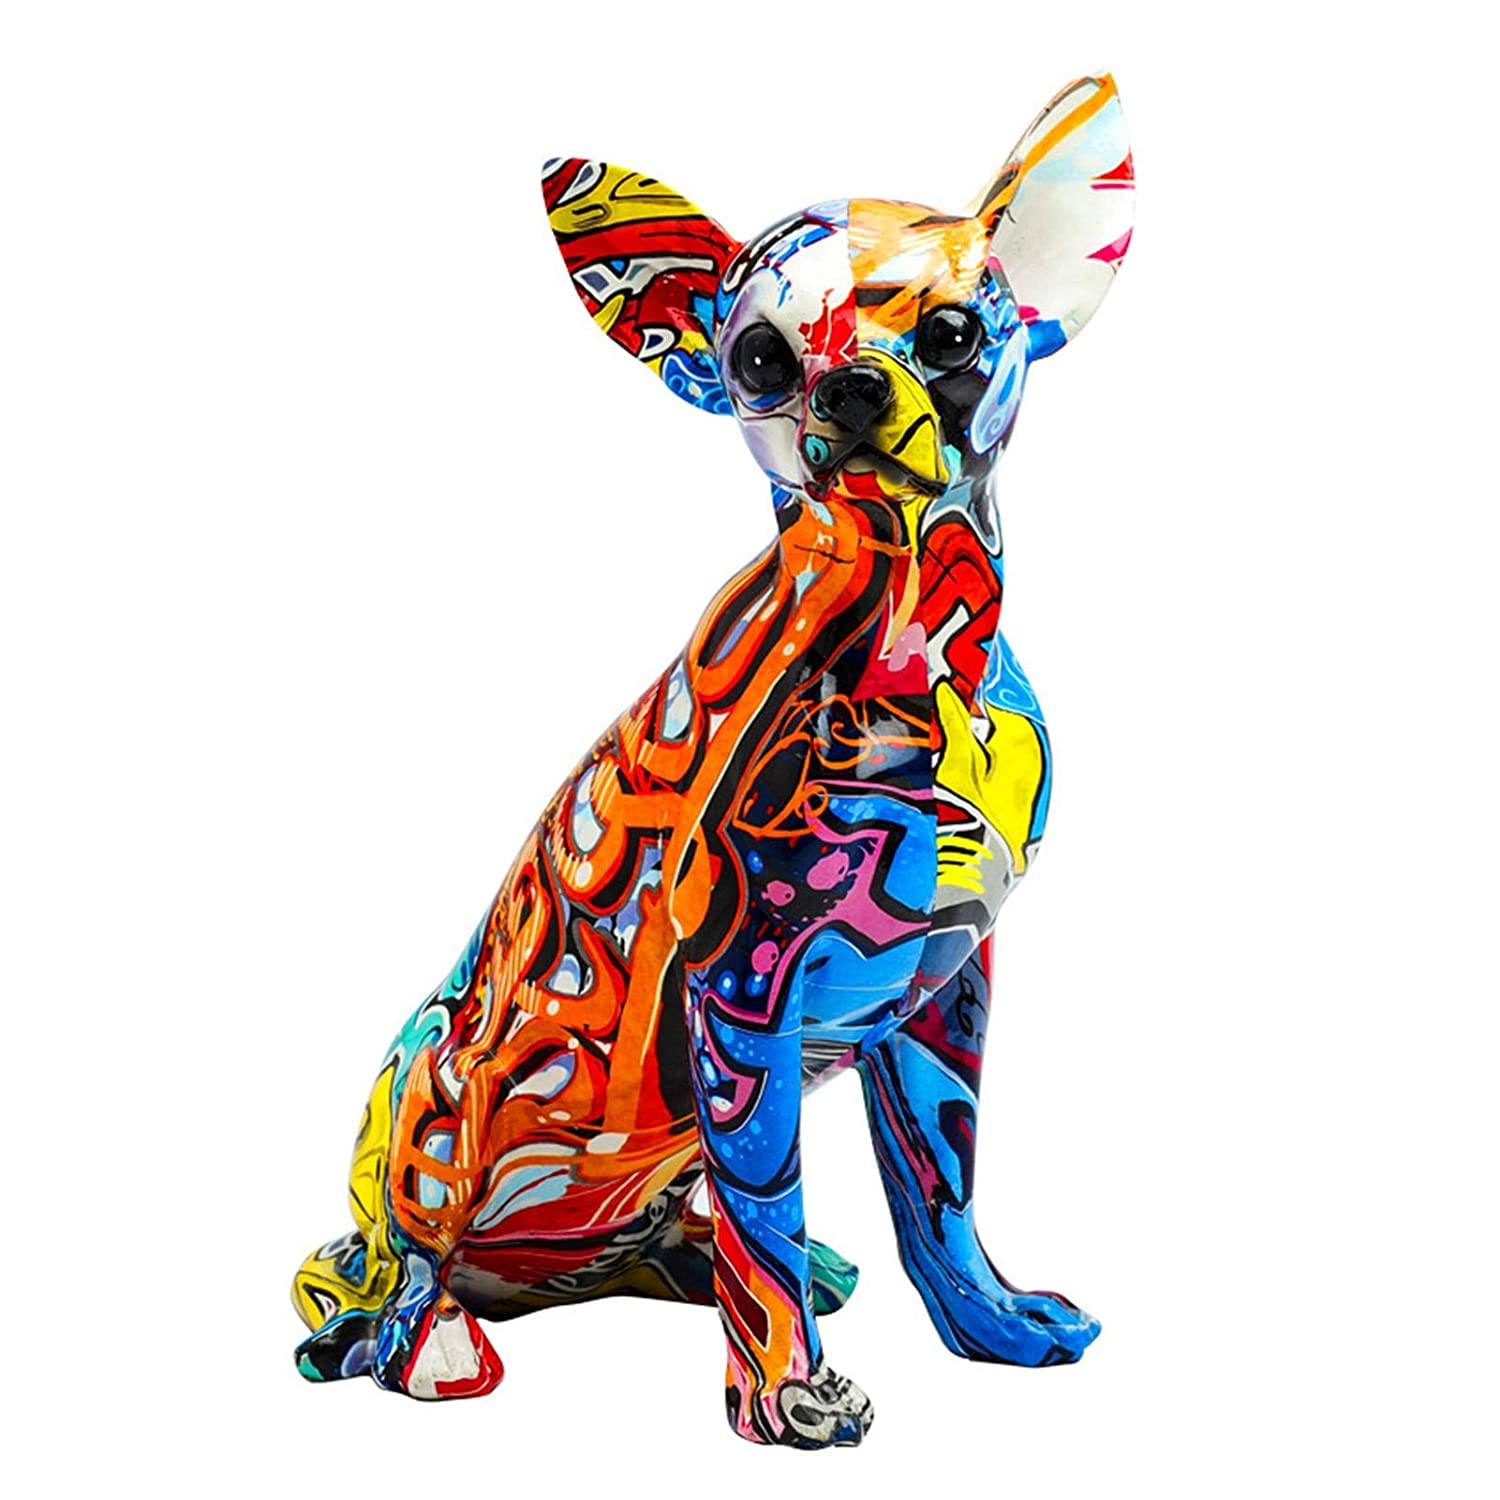 Graffiti Chihuahua Statue, MultiColor Dog Statue Innovative Resin Animal Ornament Chihuahua Puppy Figurine Resin Sculpture Garden Decor Simple Living Room Color Clothing Home Office Desktop Decoration